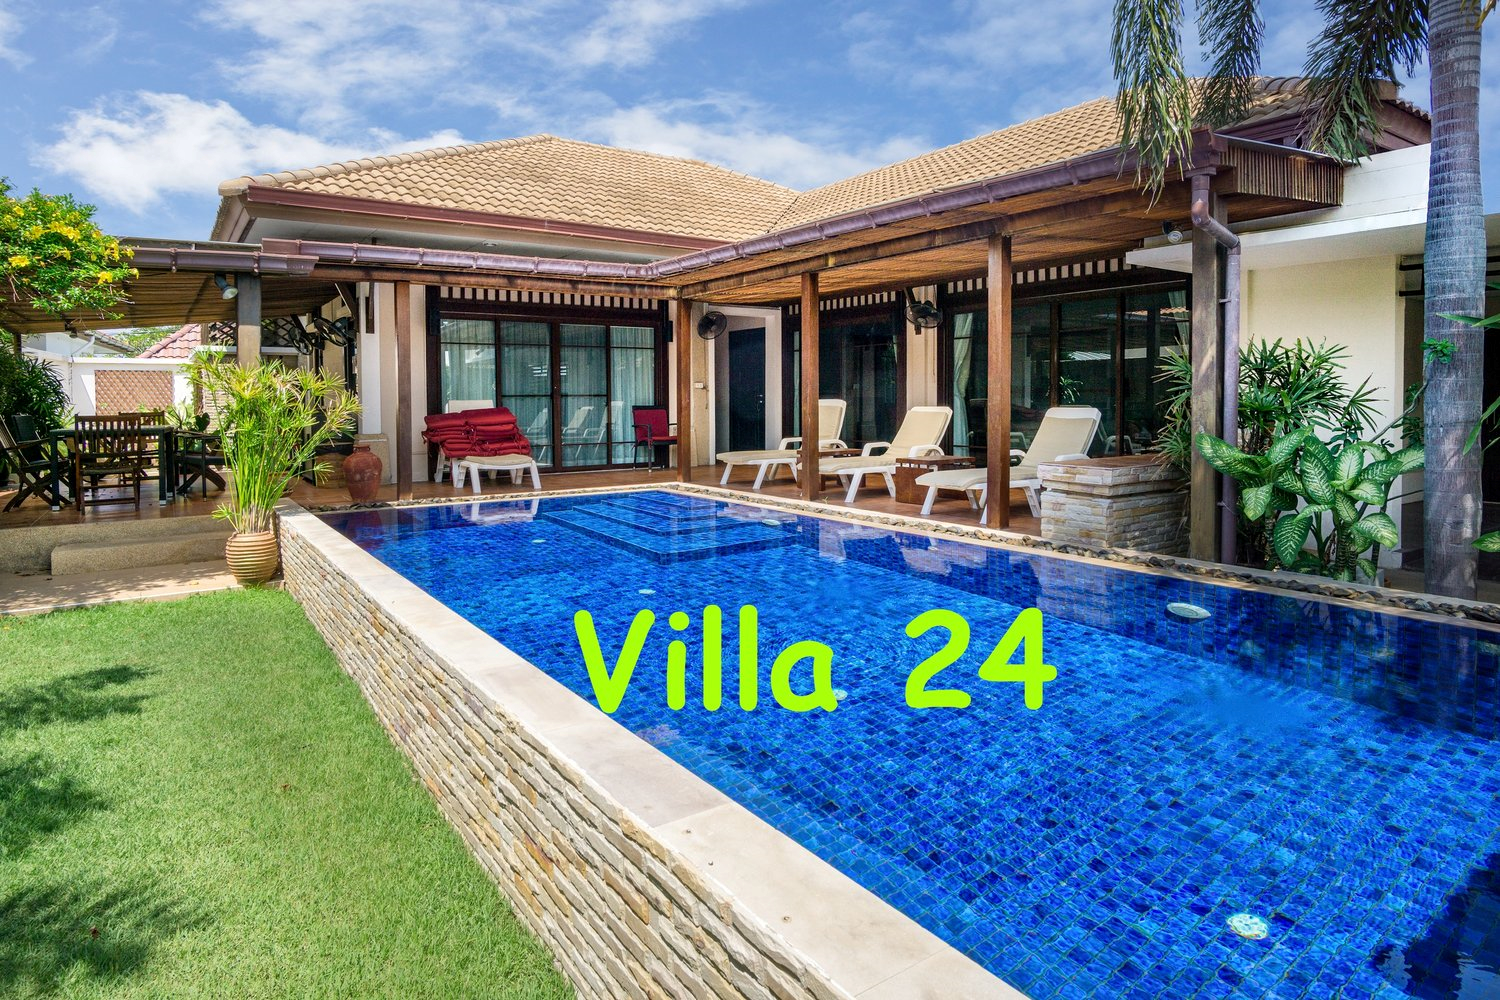 Basuba Pool Villas, No 24, 4 bedrooms